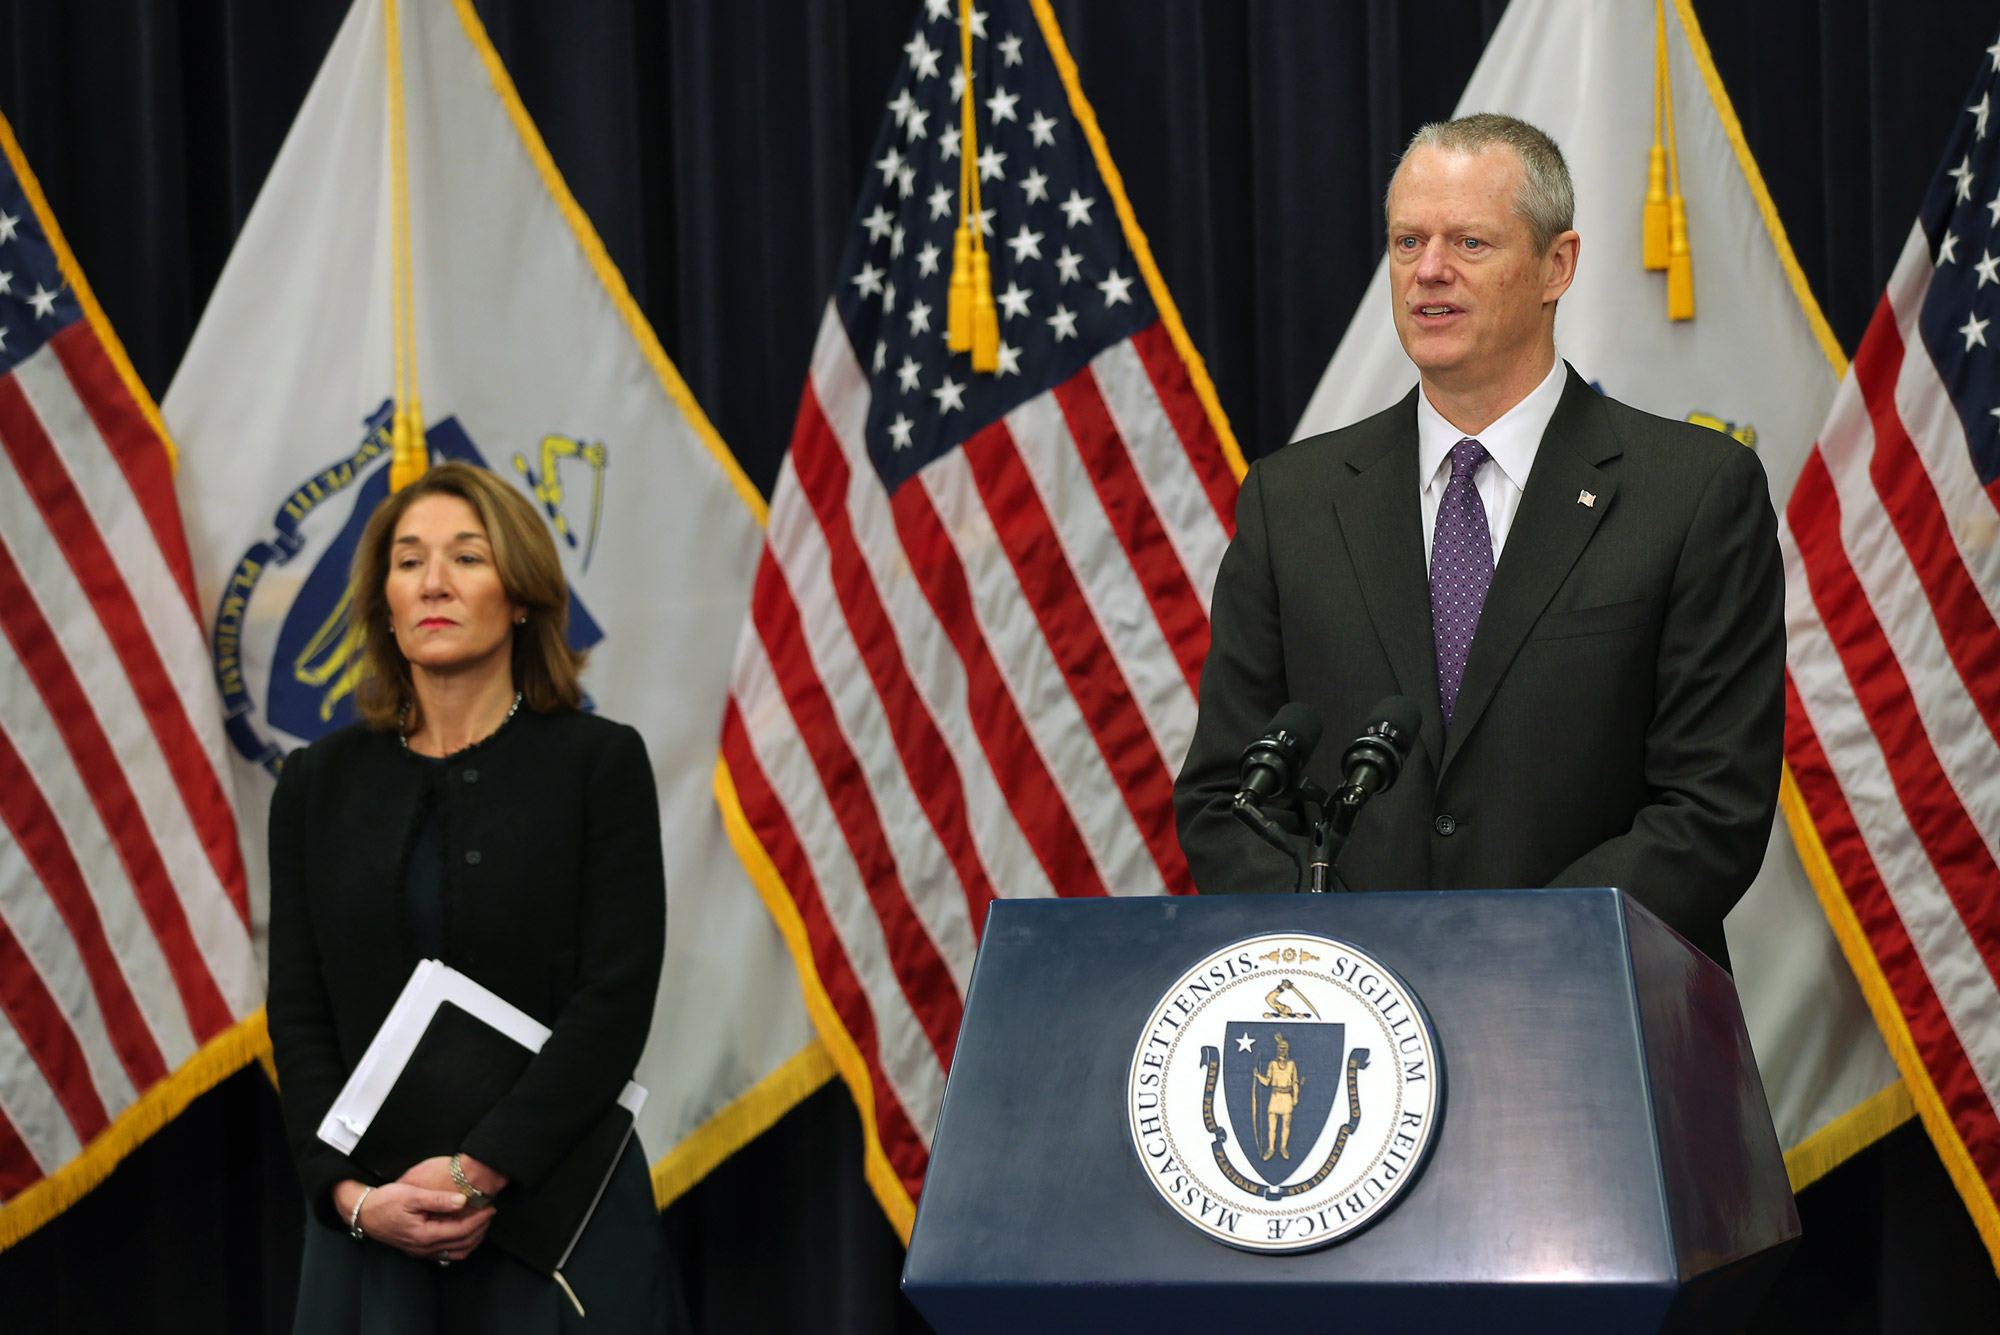 A photo of Massachusetts Gov. Charlie Baker at his March 23, 2020 press conference